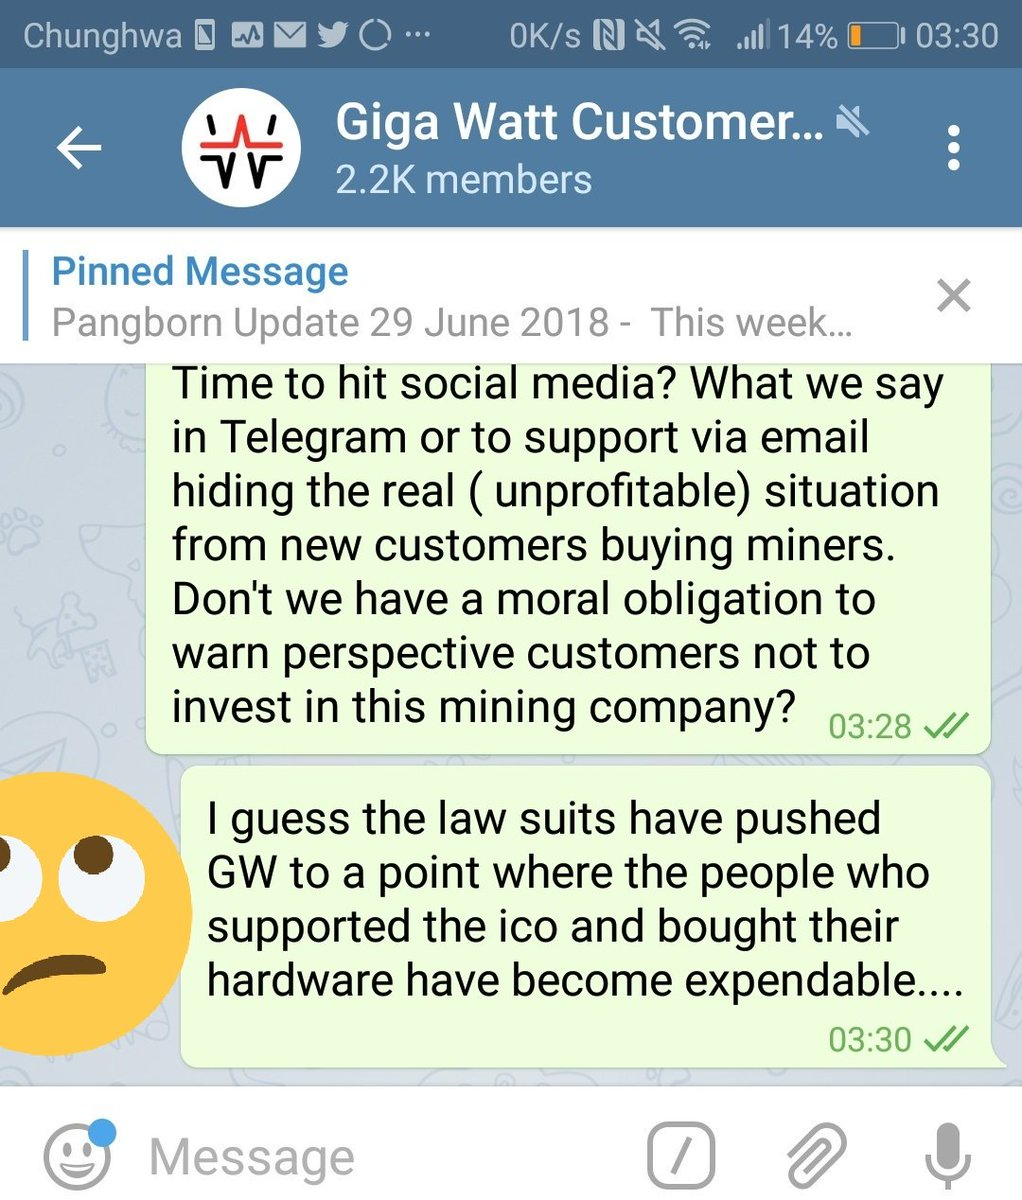 After 12 Months Ive Lost Confidence In The Company Either They Are Incompetent Or Using Our Miners For Their Profit